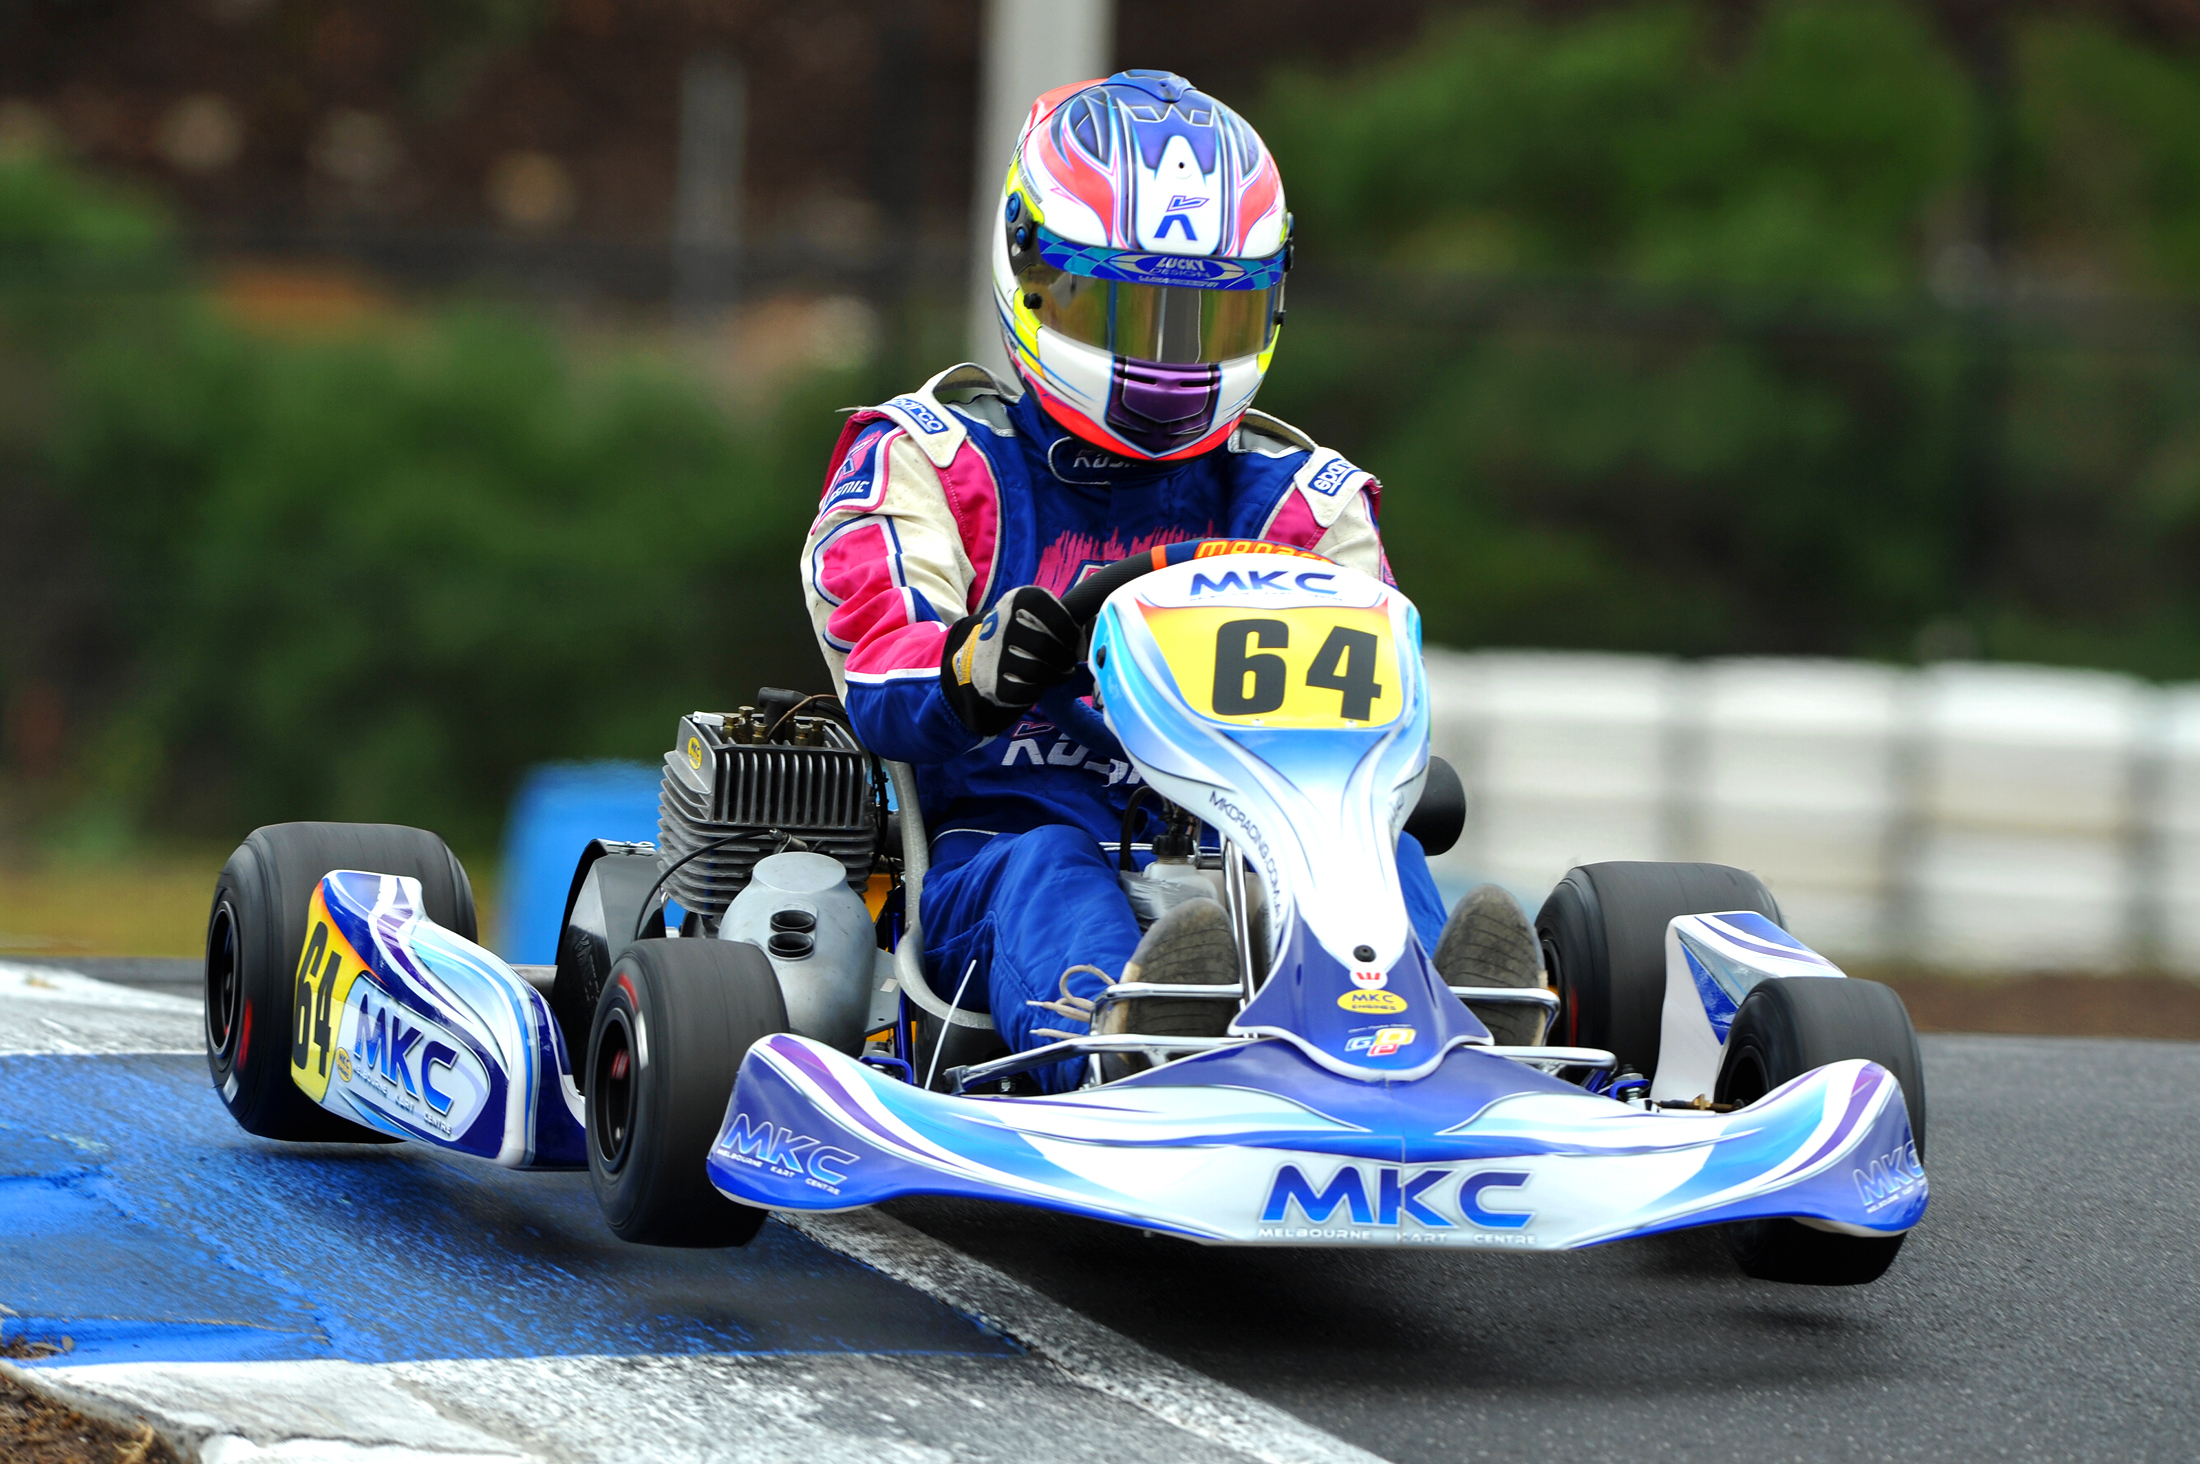 Hughes sets the pace in qualifying at Oakleigh